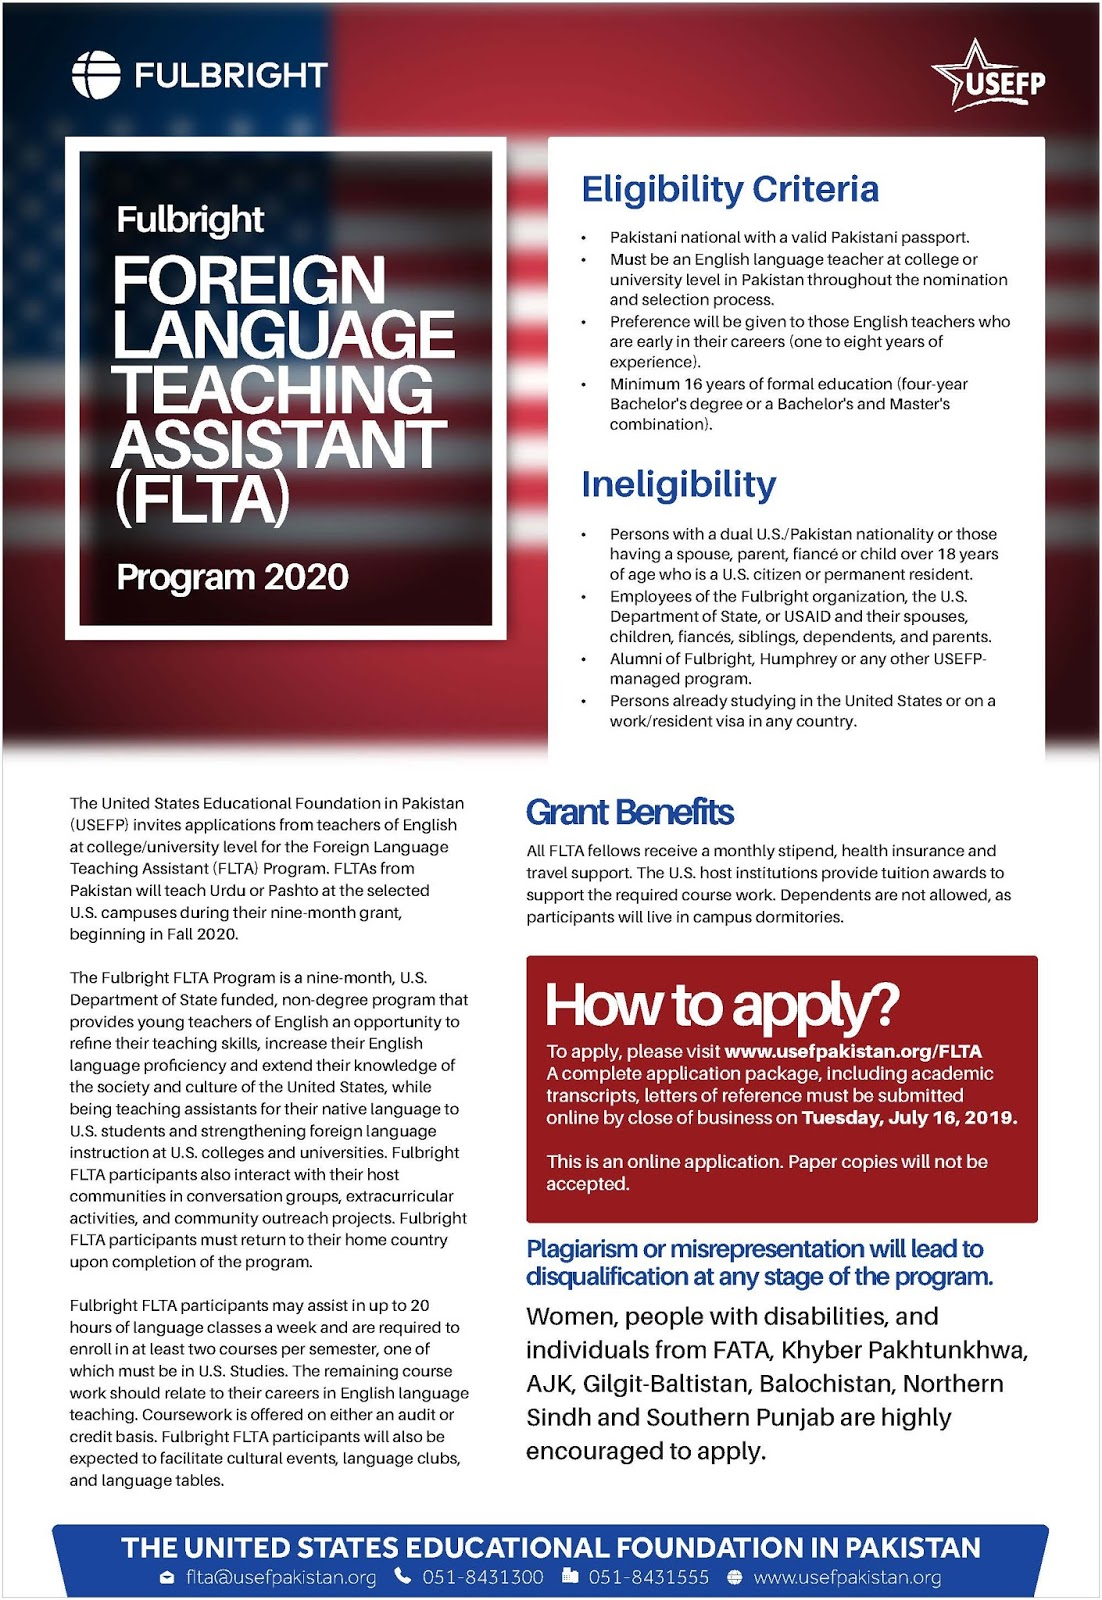 Fulbright Foreign Language Teaching Assistant (FLTA) Fully Funded Opportunity At America 2020